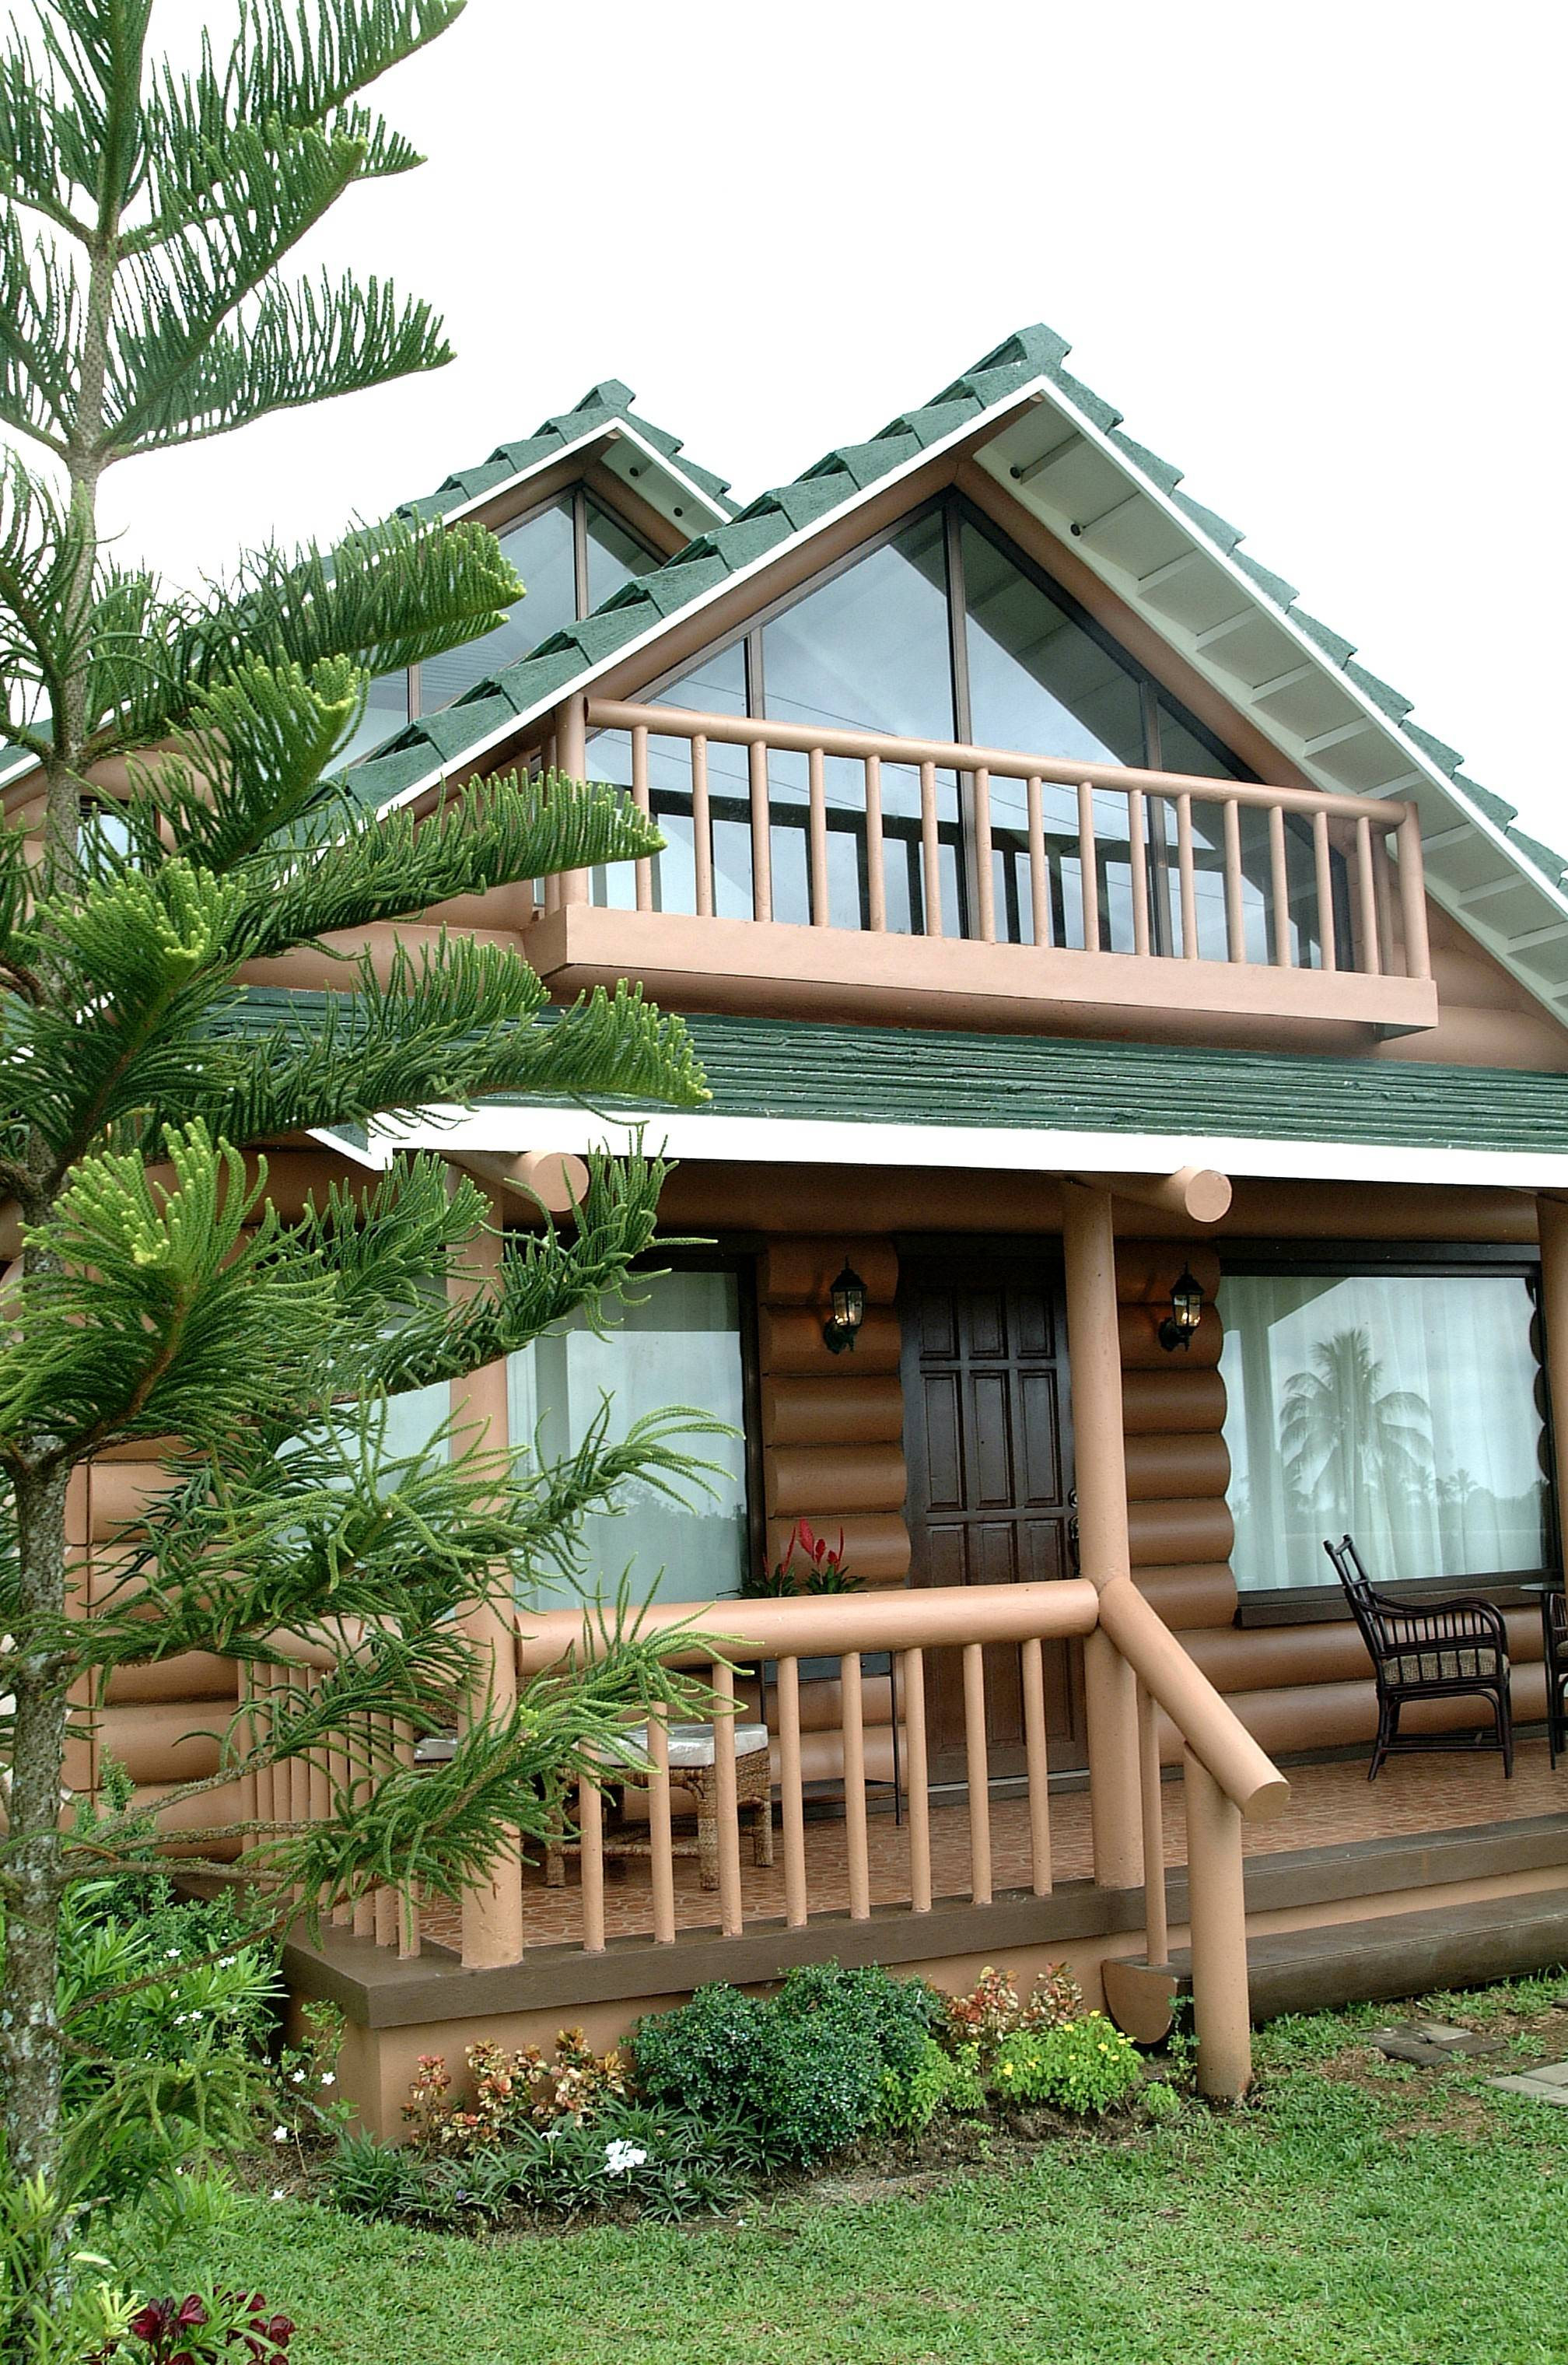 House For Sale Tagaytay Tagaytay Philippines Beautiful